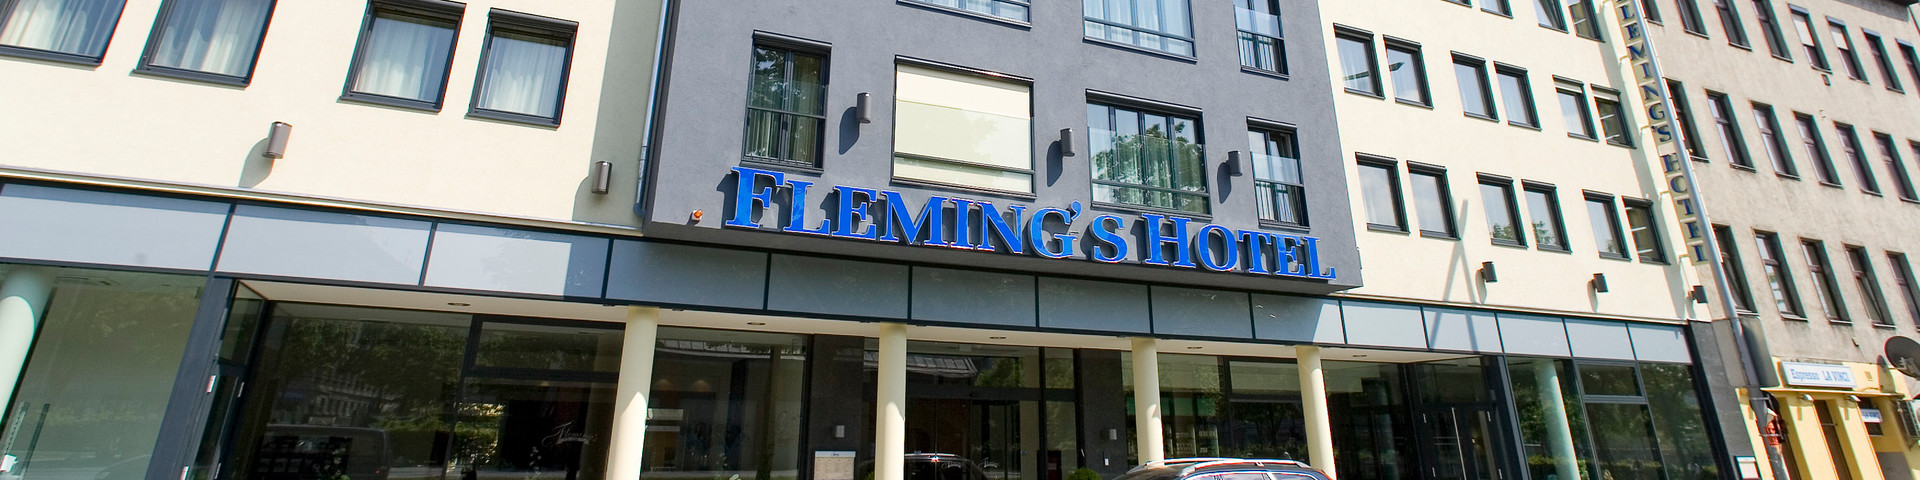 Fleming's Hotel Wien-Westbahnhof - Aussenansicht © Fleming's Hotels & Restaurants